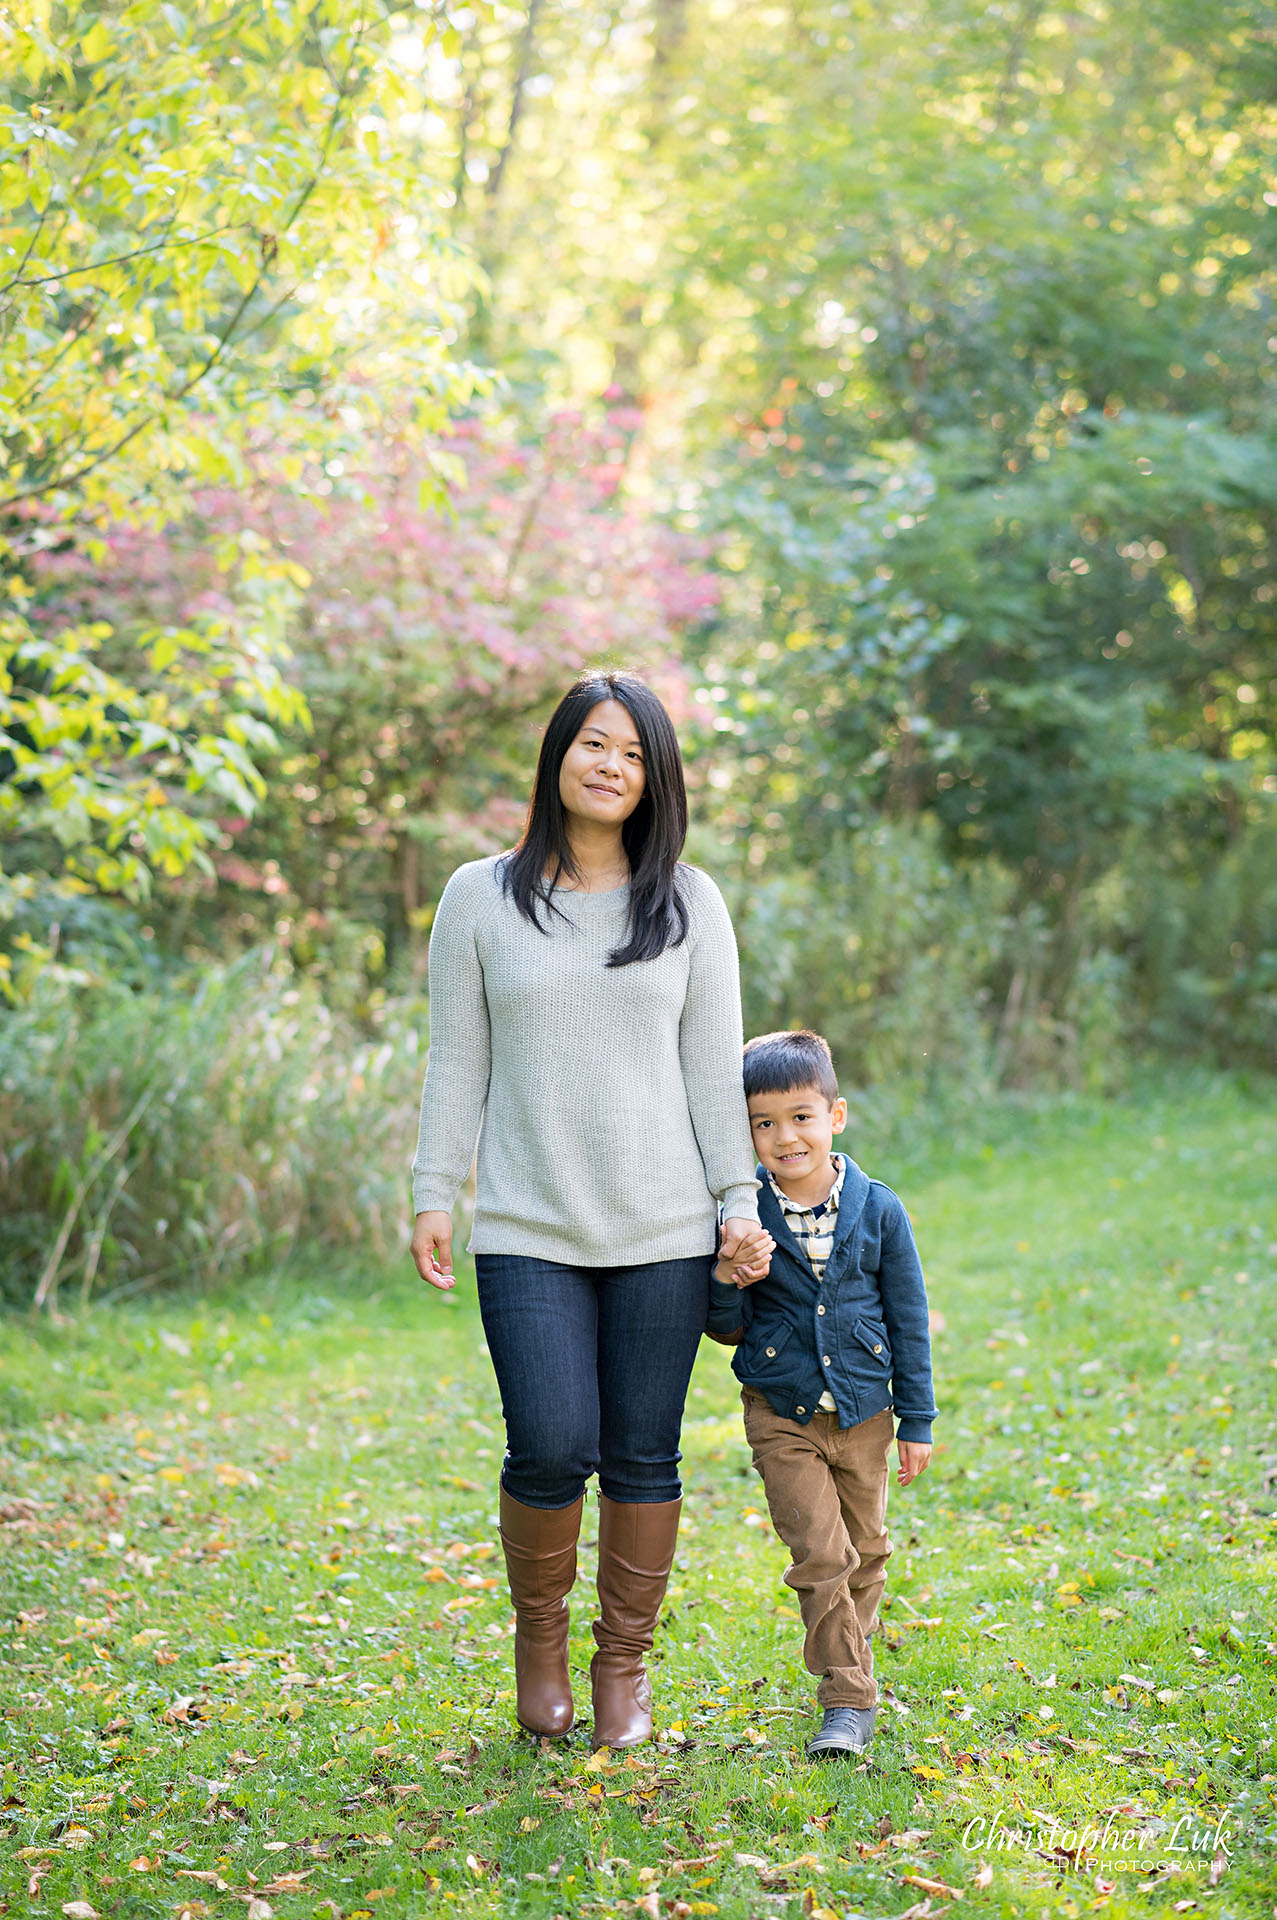 Christopher Luk Family Photographer Toronto Markham Unionville Autumn Fall Leaves Natural Candid Photojournalistic Mother Motherhood Son Brother Holding Hands Smile